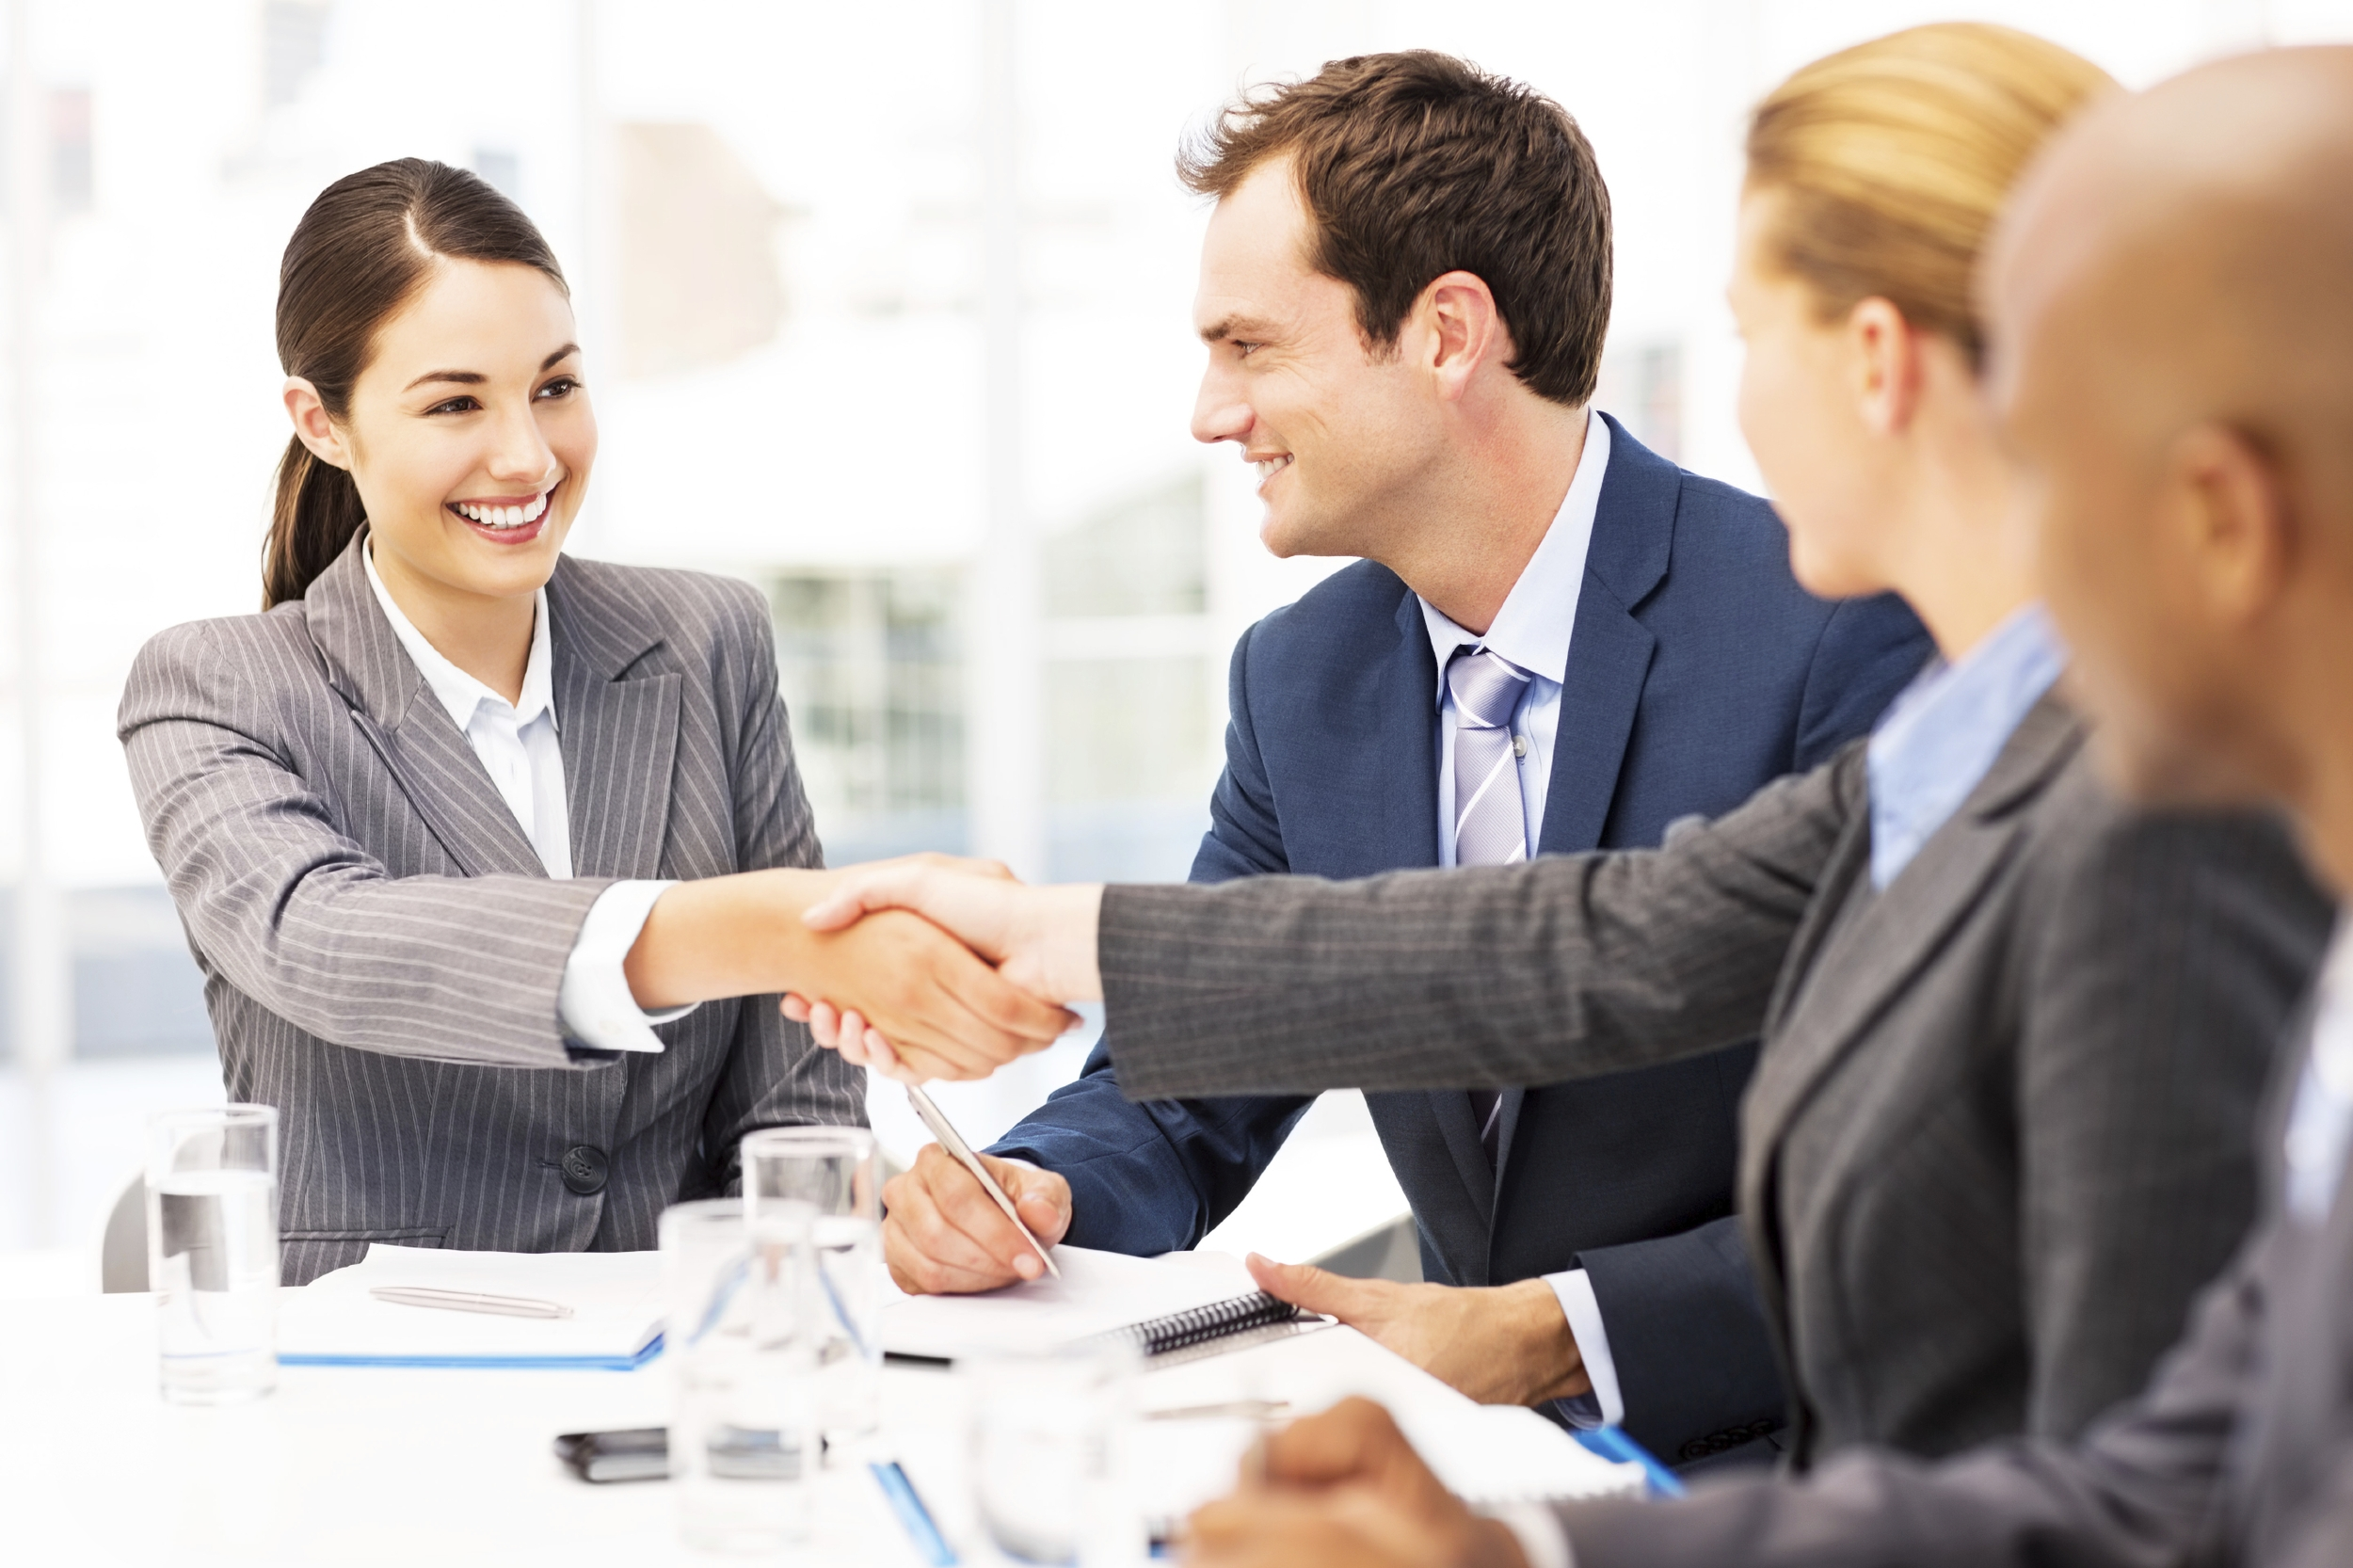 A positive business meeting with two women shaking hands.